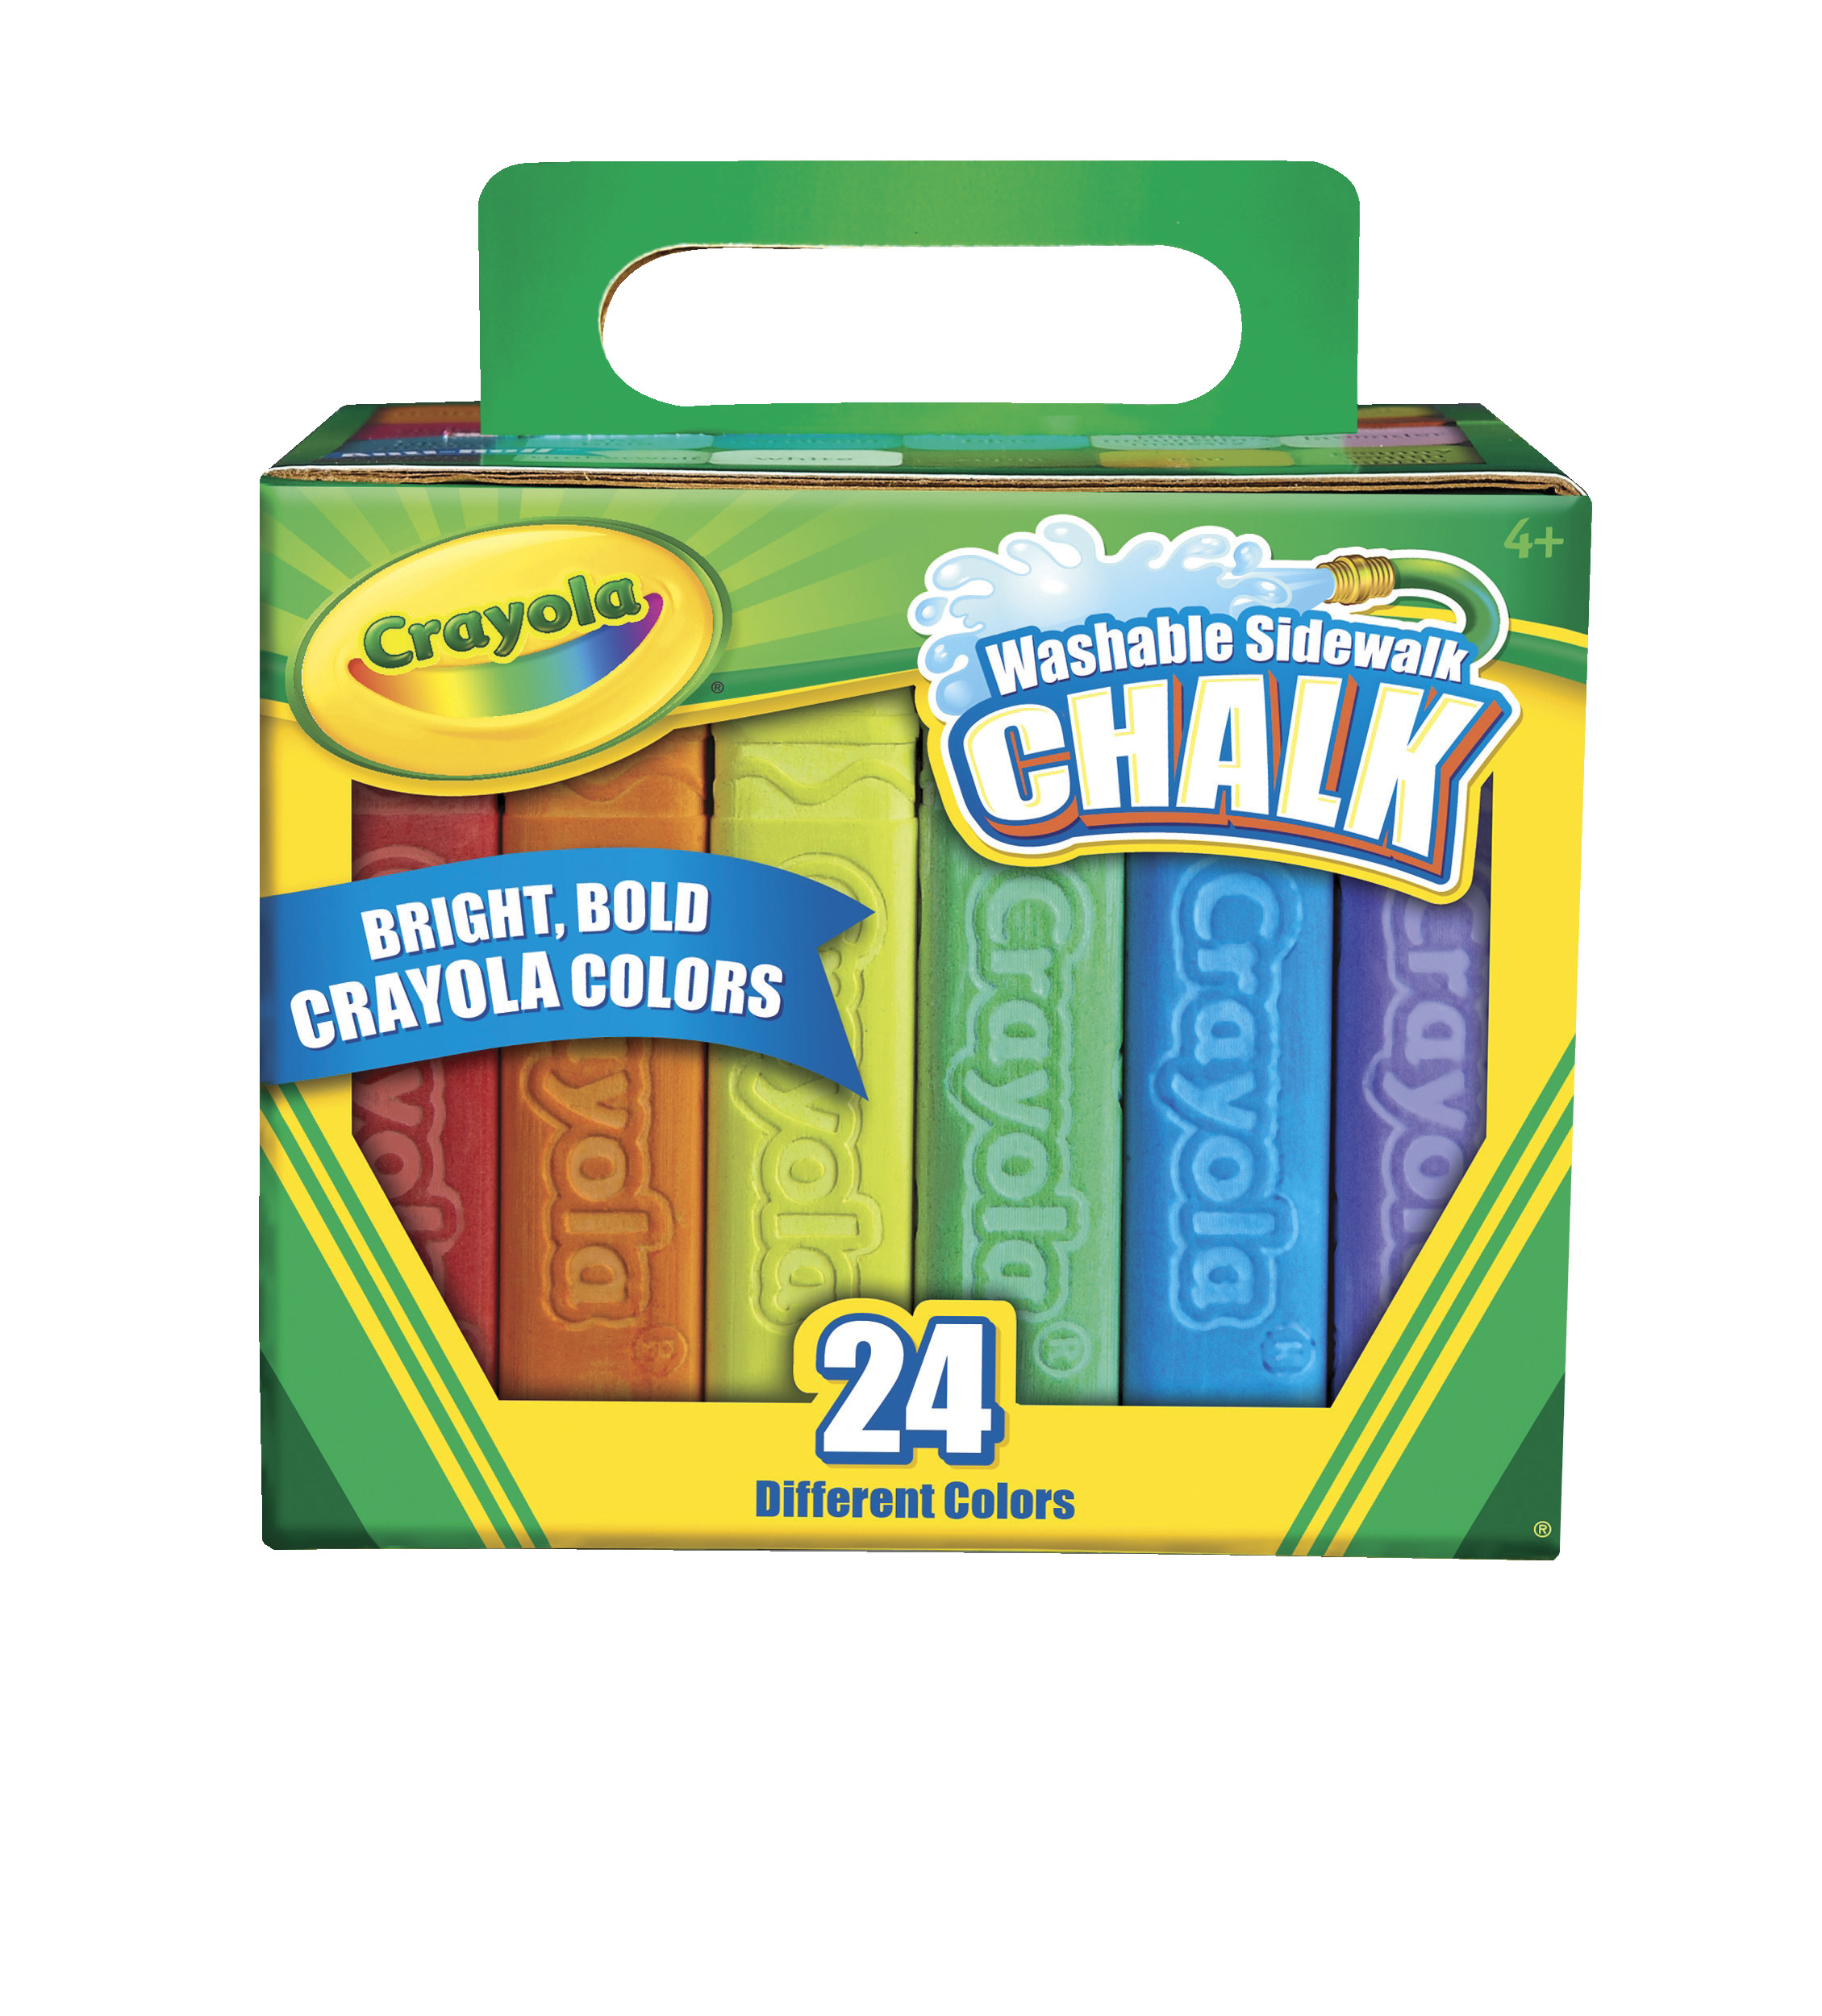 Crayola Washable Anti-Roll 24 count Sidewalk Chalk in Assorted Colors